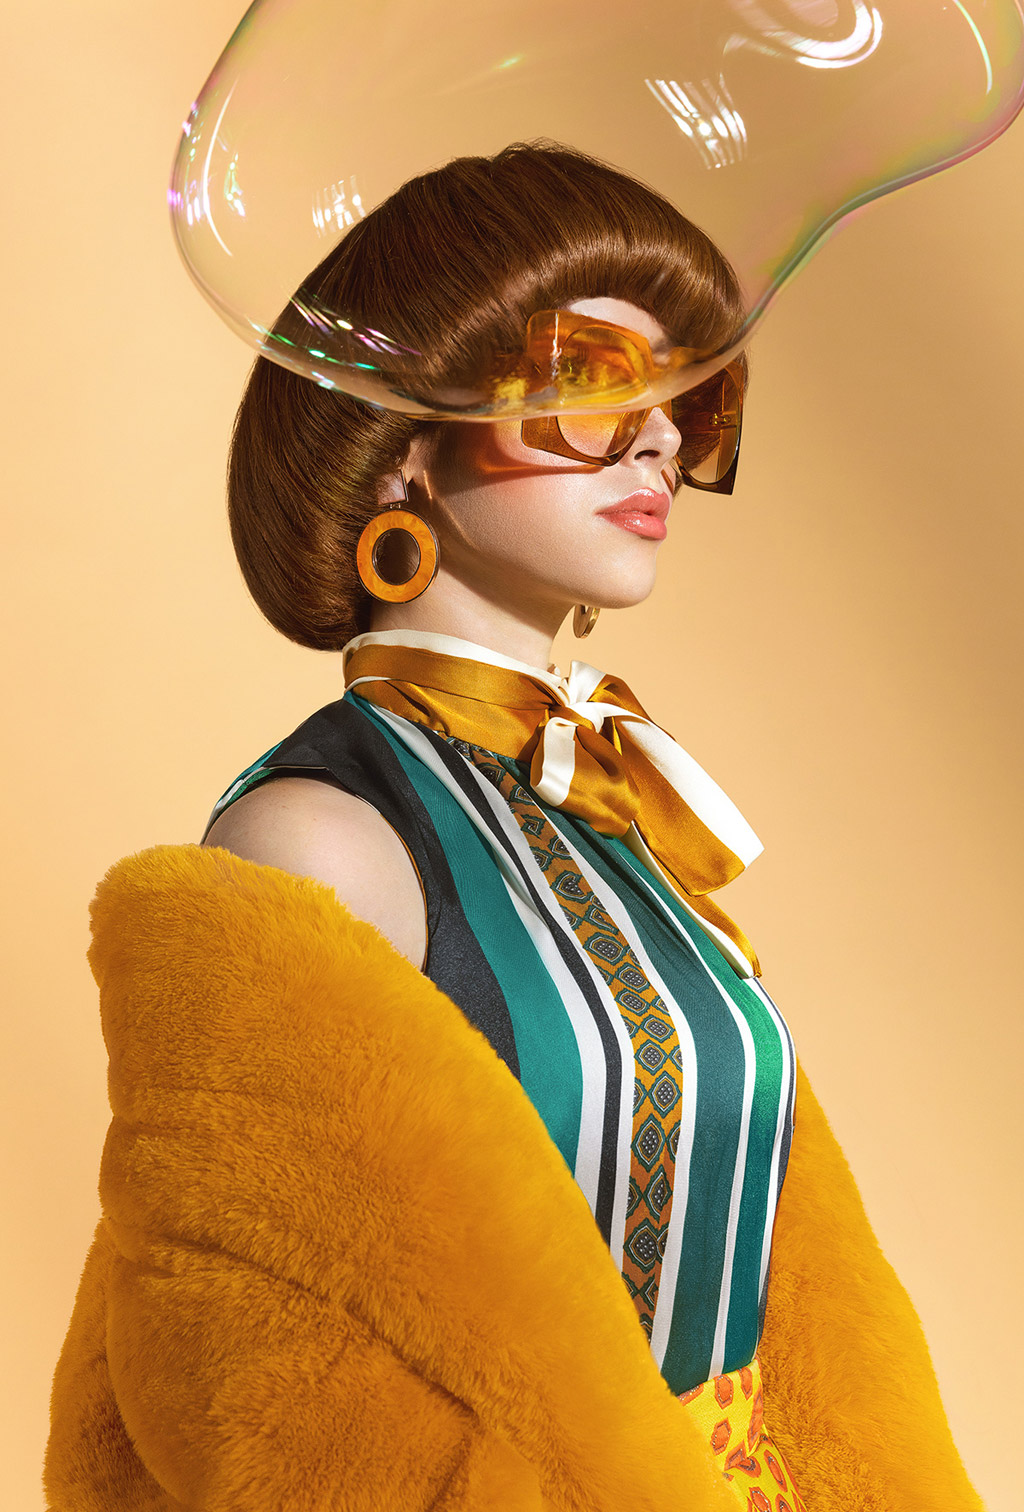 fashion photography girl by ahmed othman